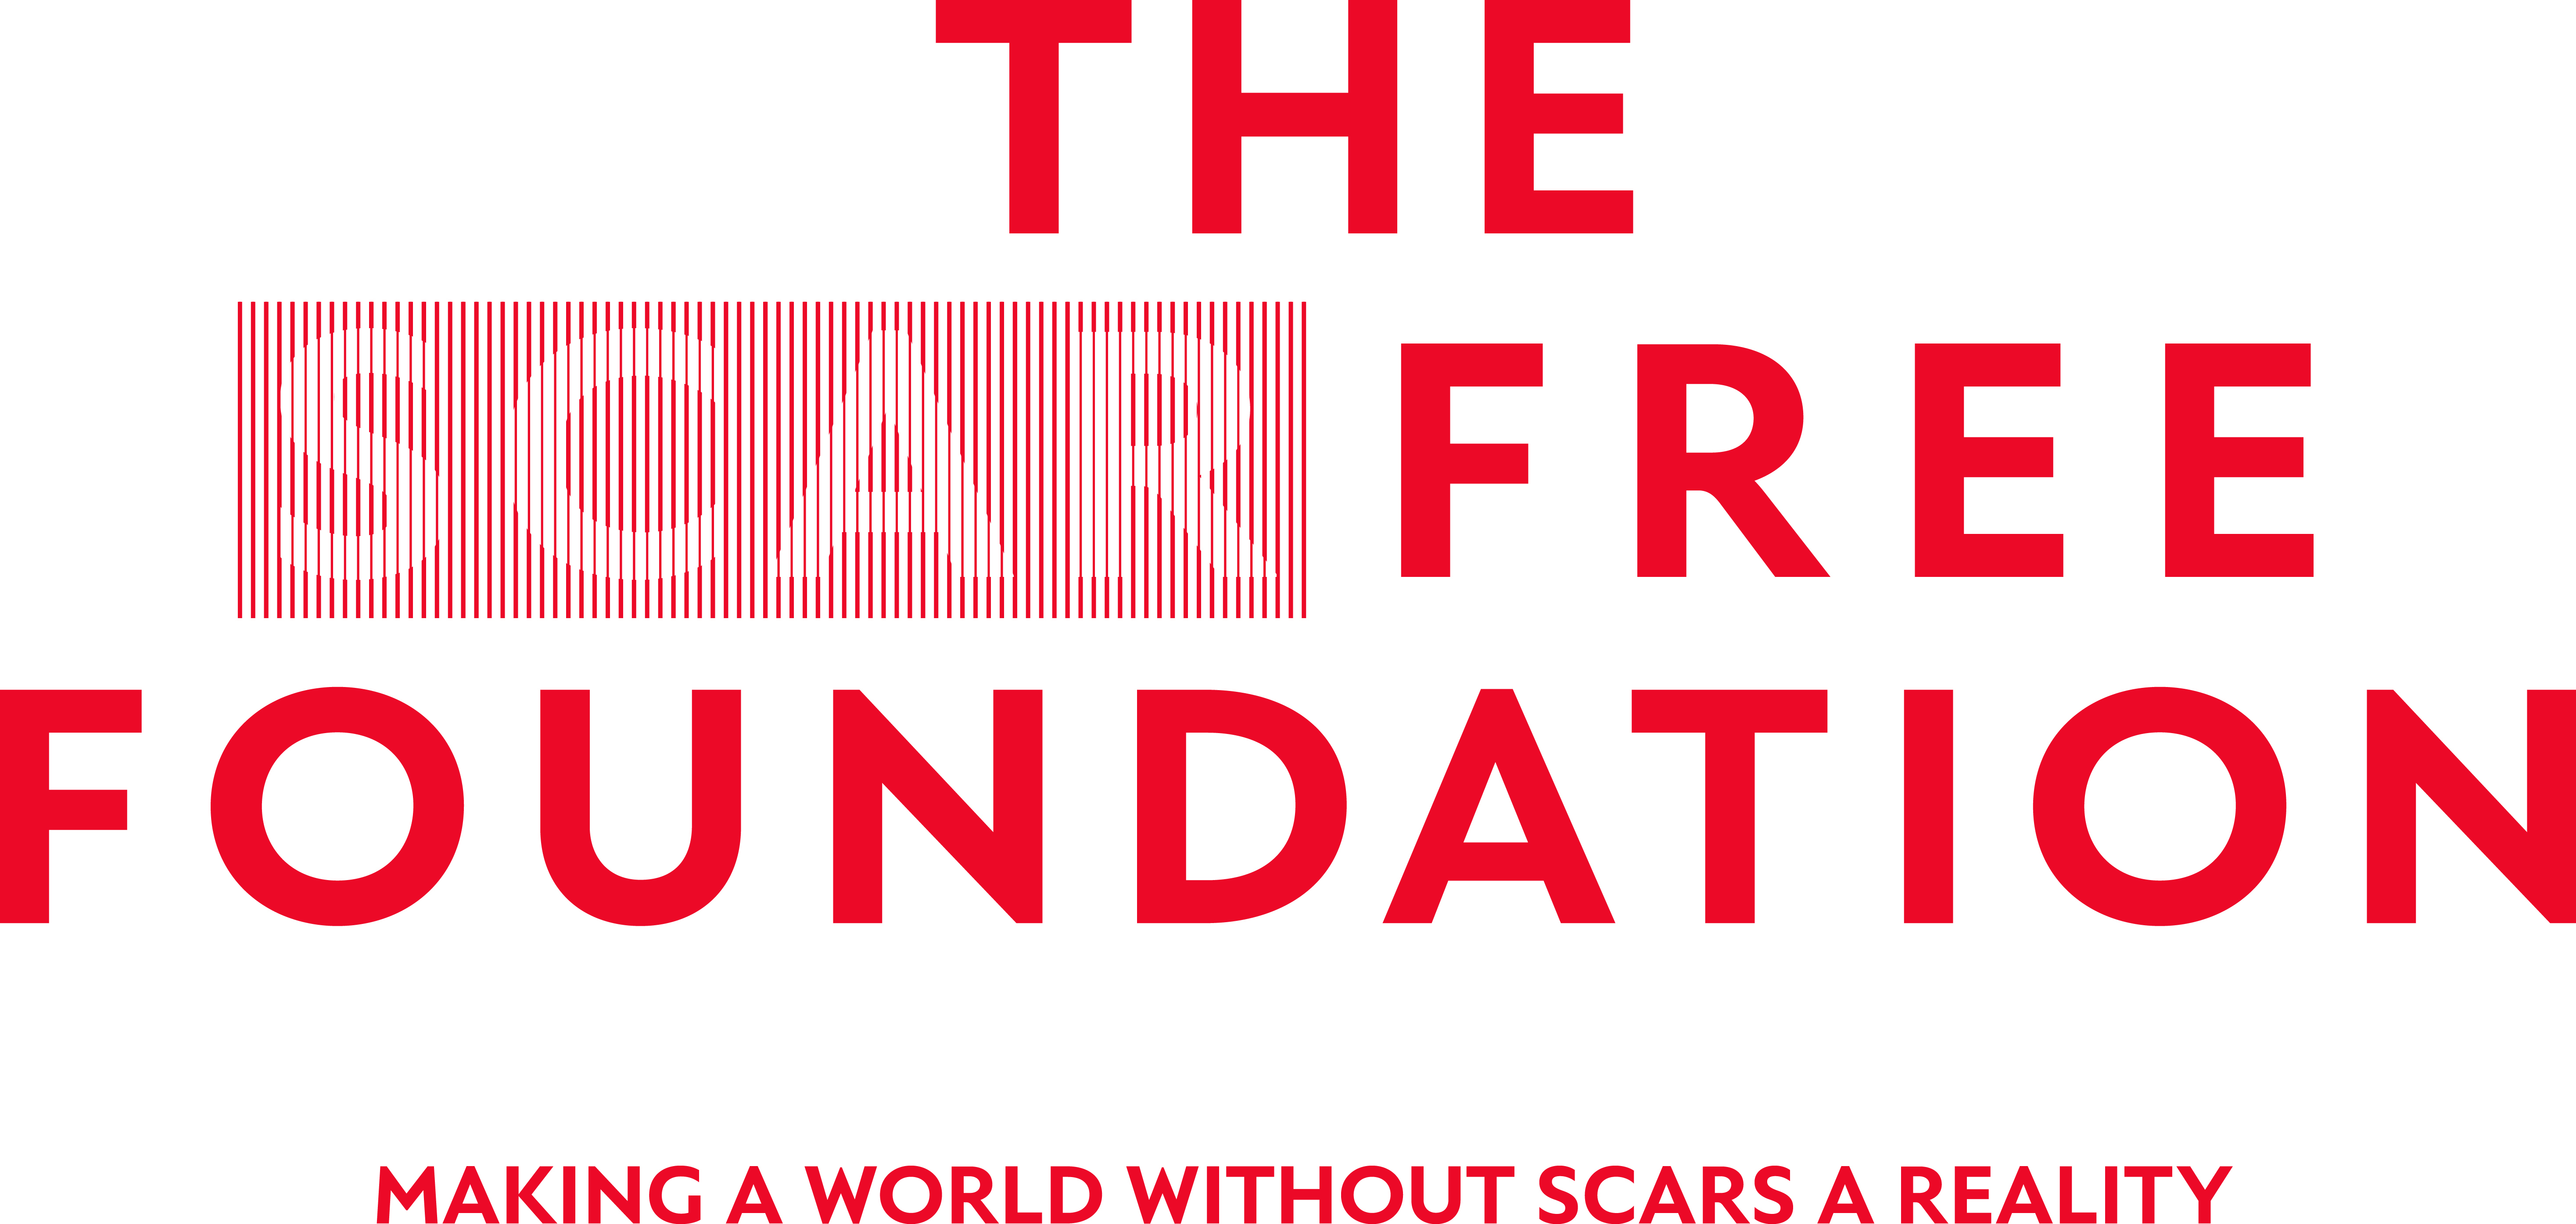 Scar Free Foundation Large Print Logo Red